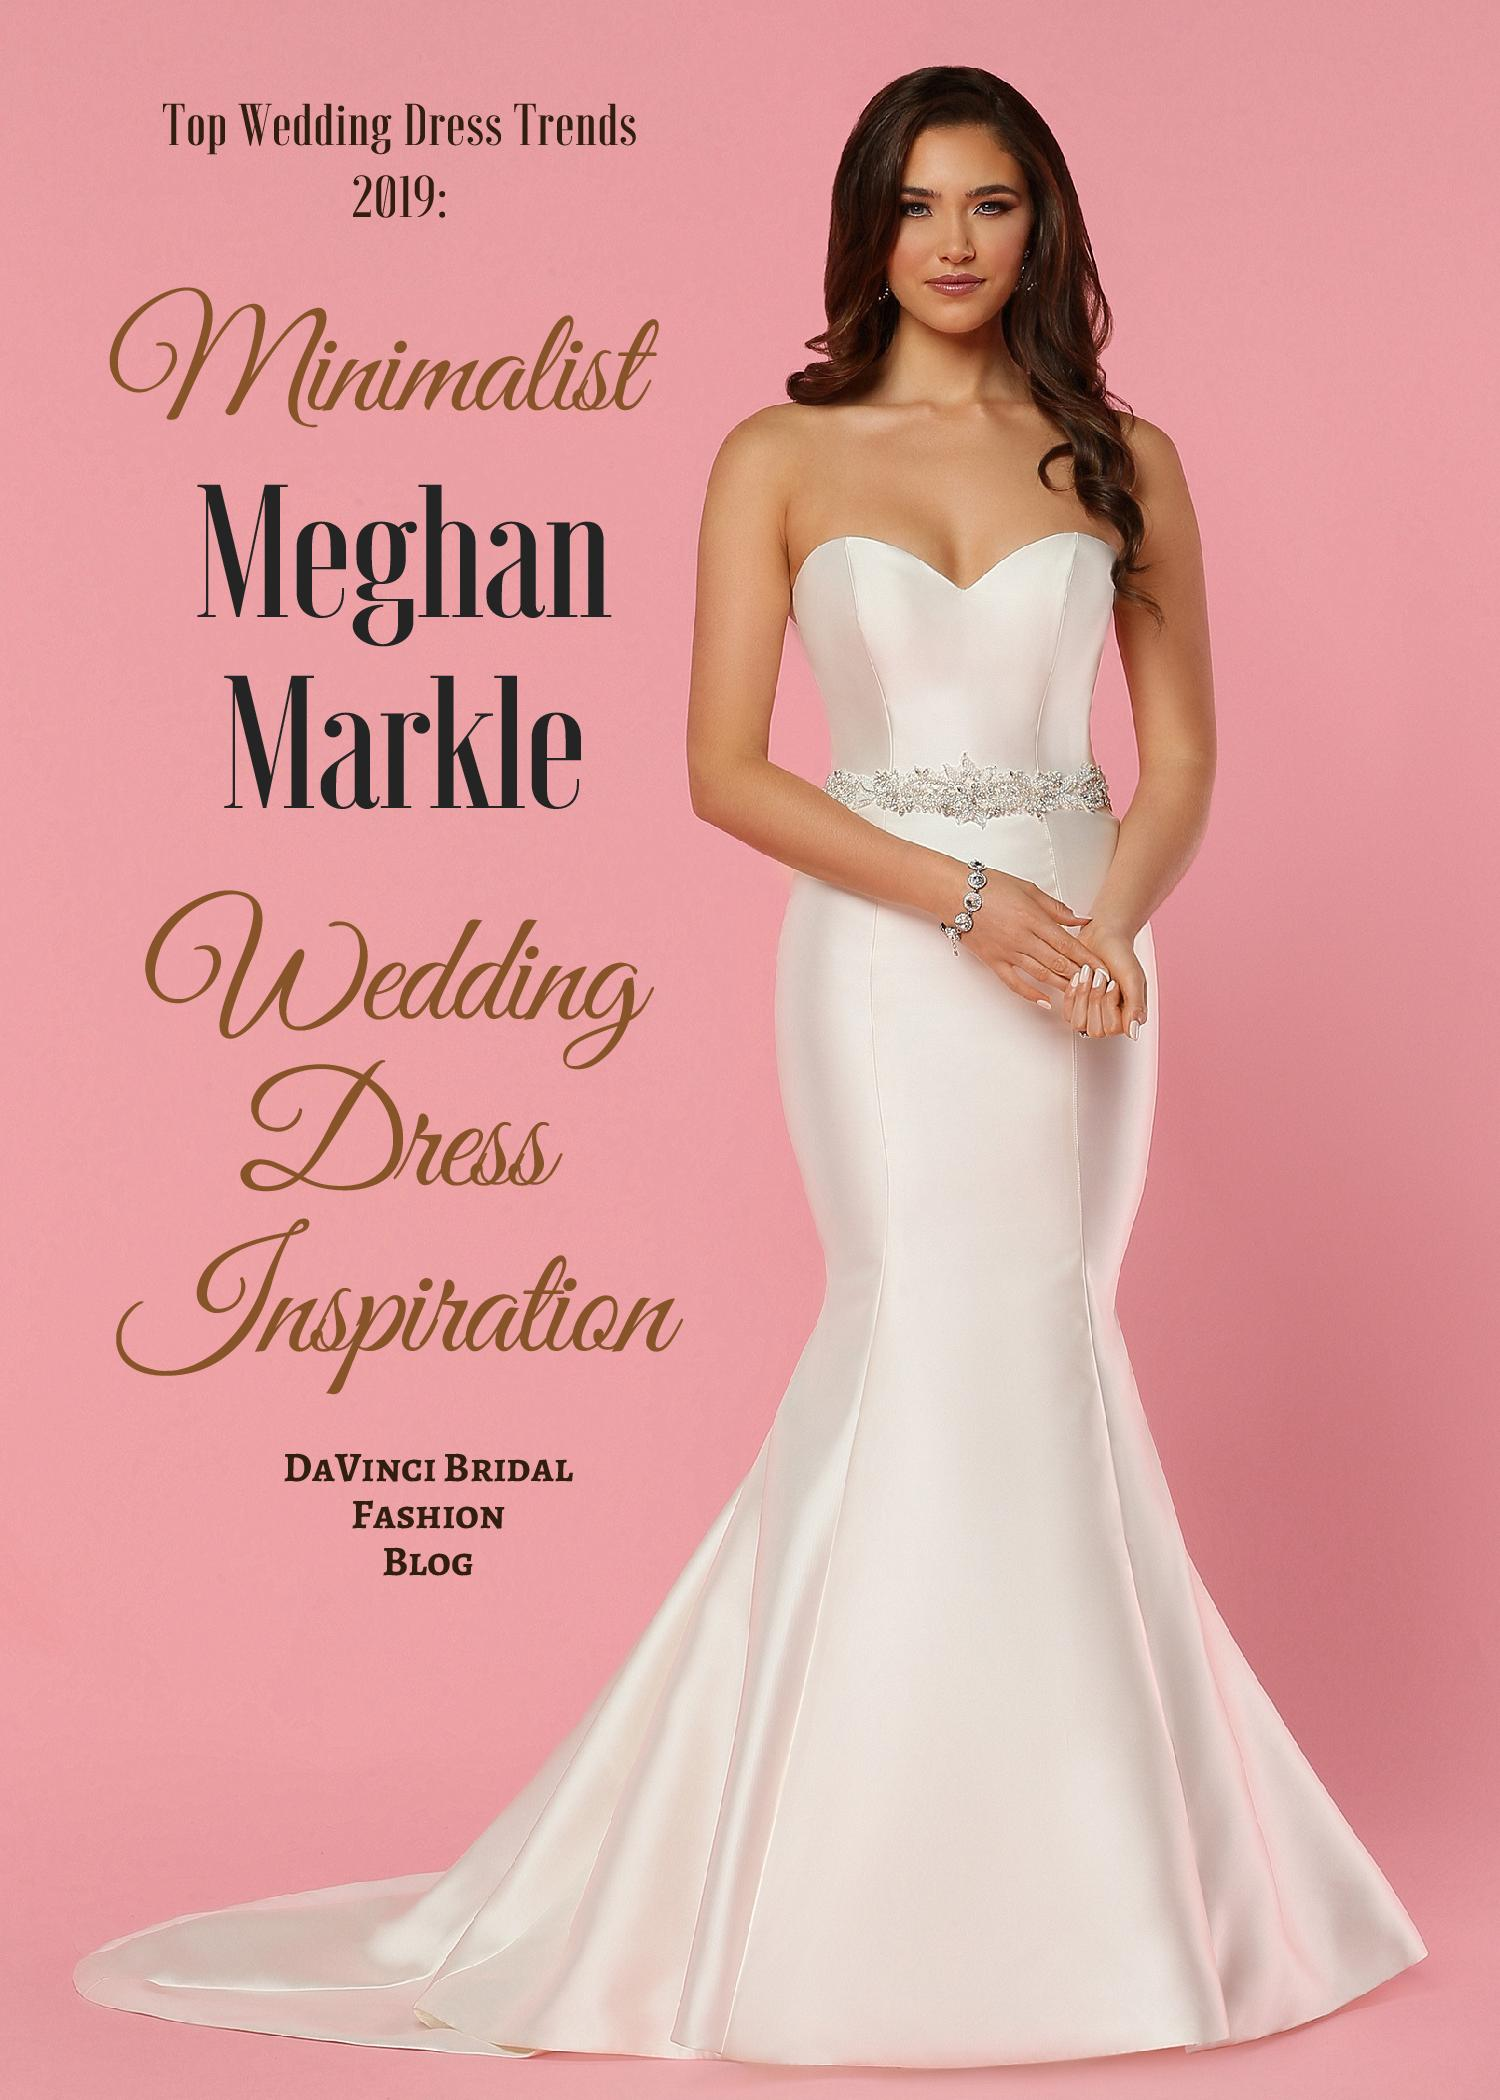 Top Wedding Dress Trends For 2019 Meghan Markle Wedding Dress